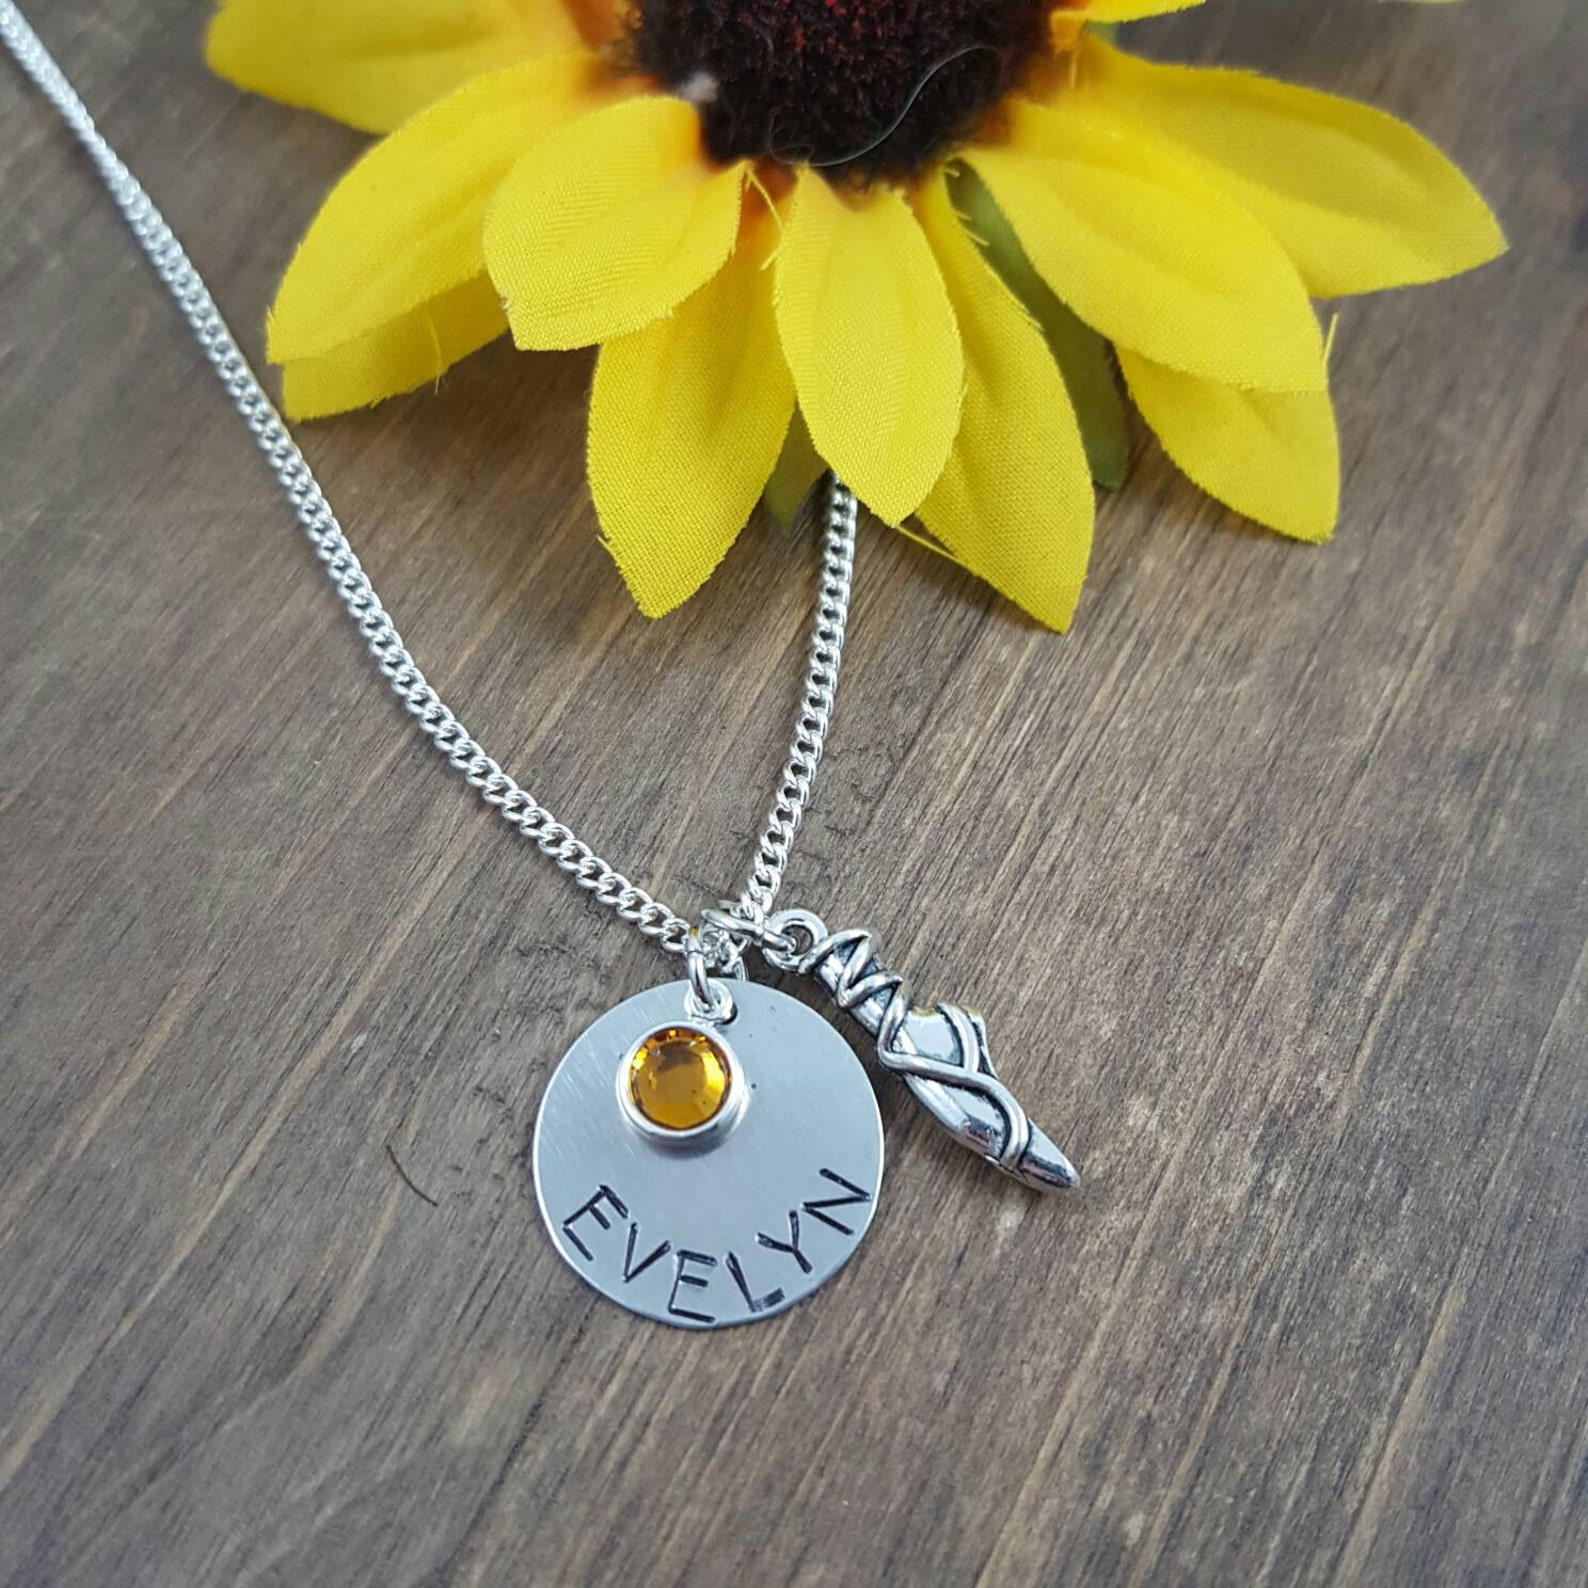 personalized ballet necklace - hand stamped name necklace with ballet shoe charm - custom ballet jewelry